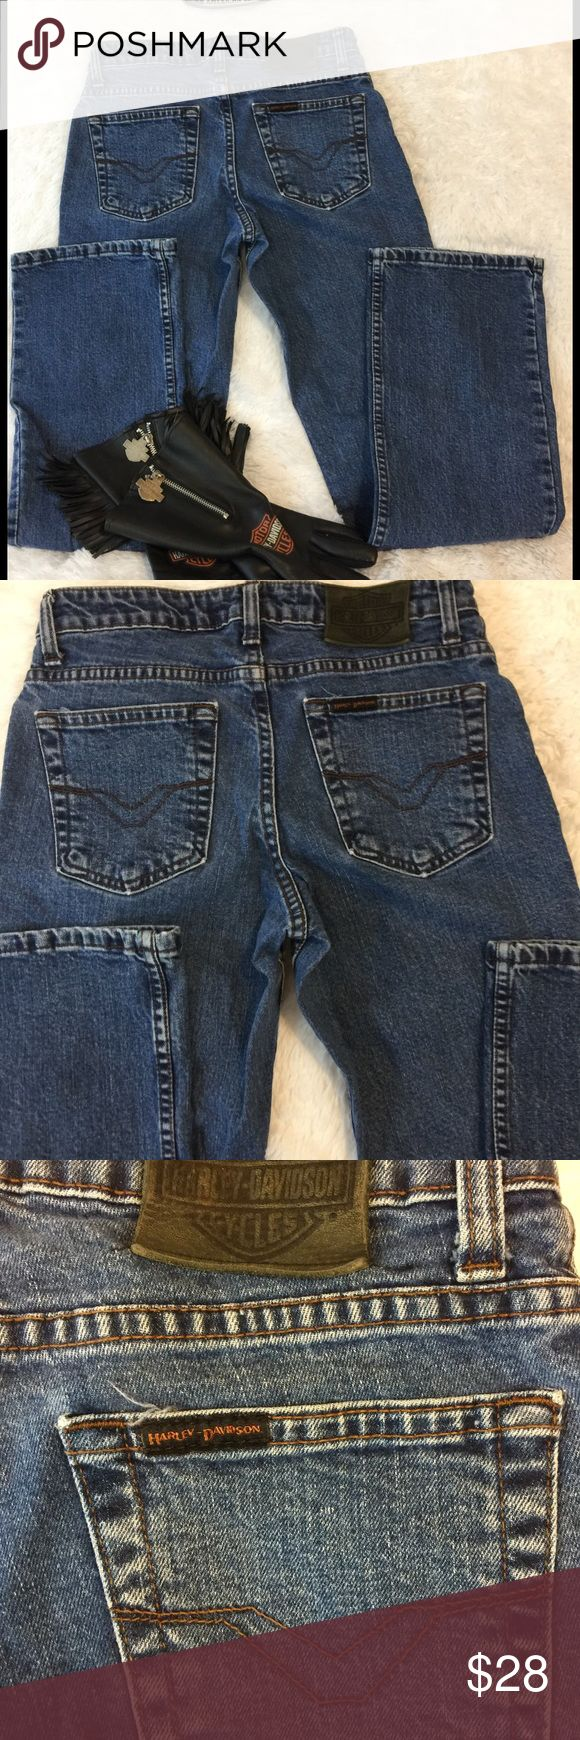 Like New Harley Davidson Jeans Excellent used condition, size 2, no pets/smoke closet Harley-Davidson Jeans Boot Cut